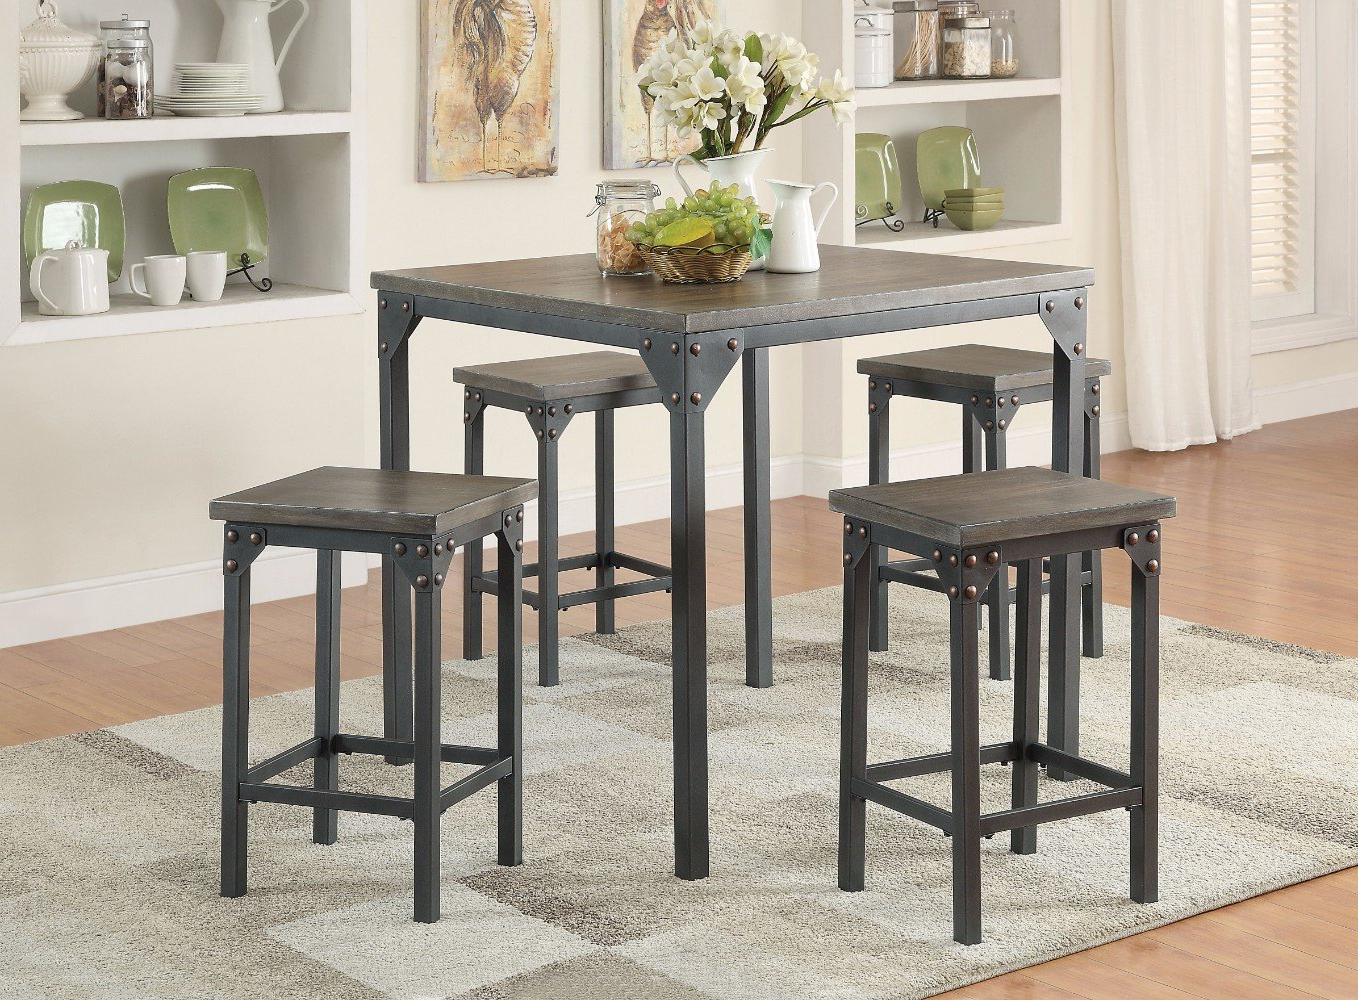 Widely Used Weatherholt Dining Tables With Regard To Gracie Oaks Browne 5 Piece Counter Height Dining Set (View 25 of 25)